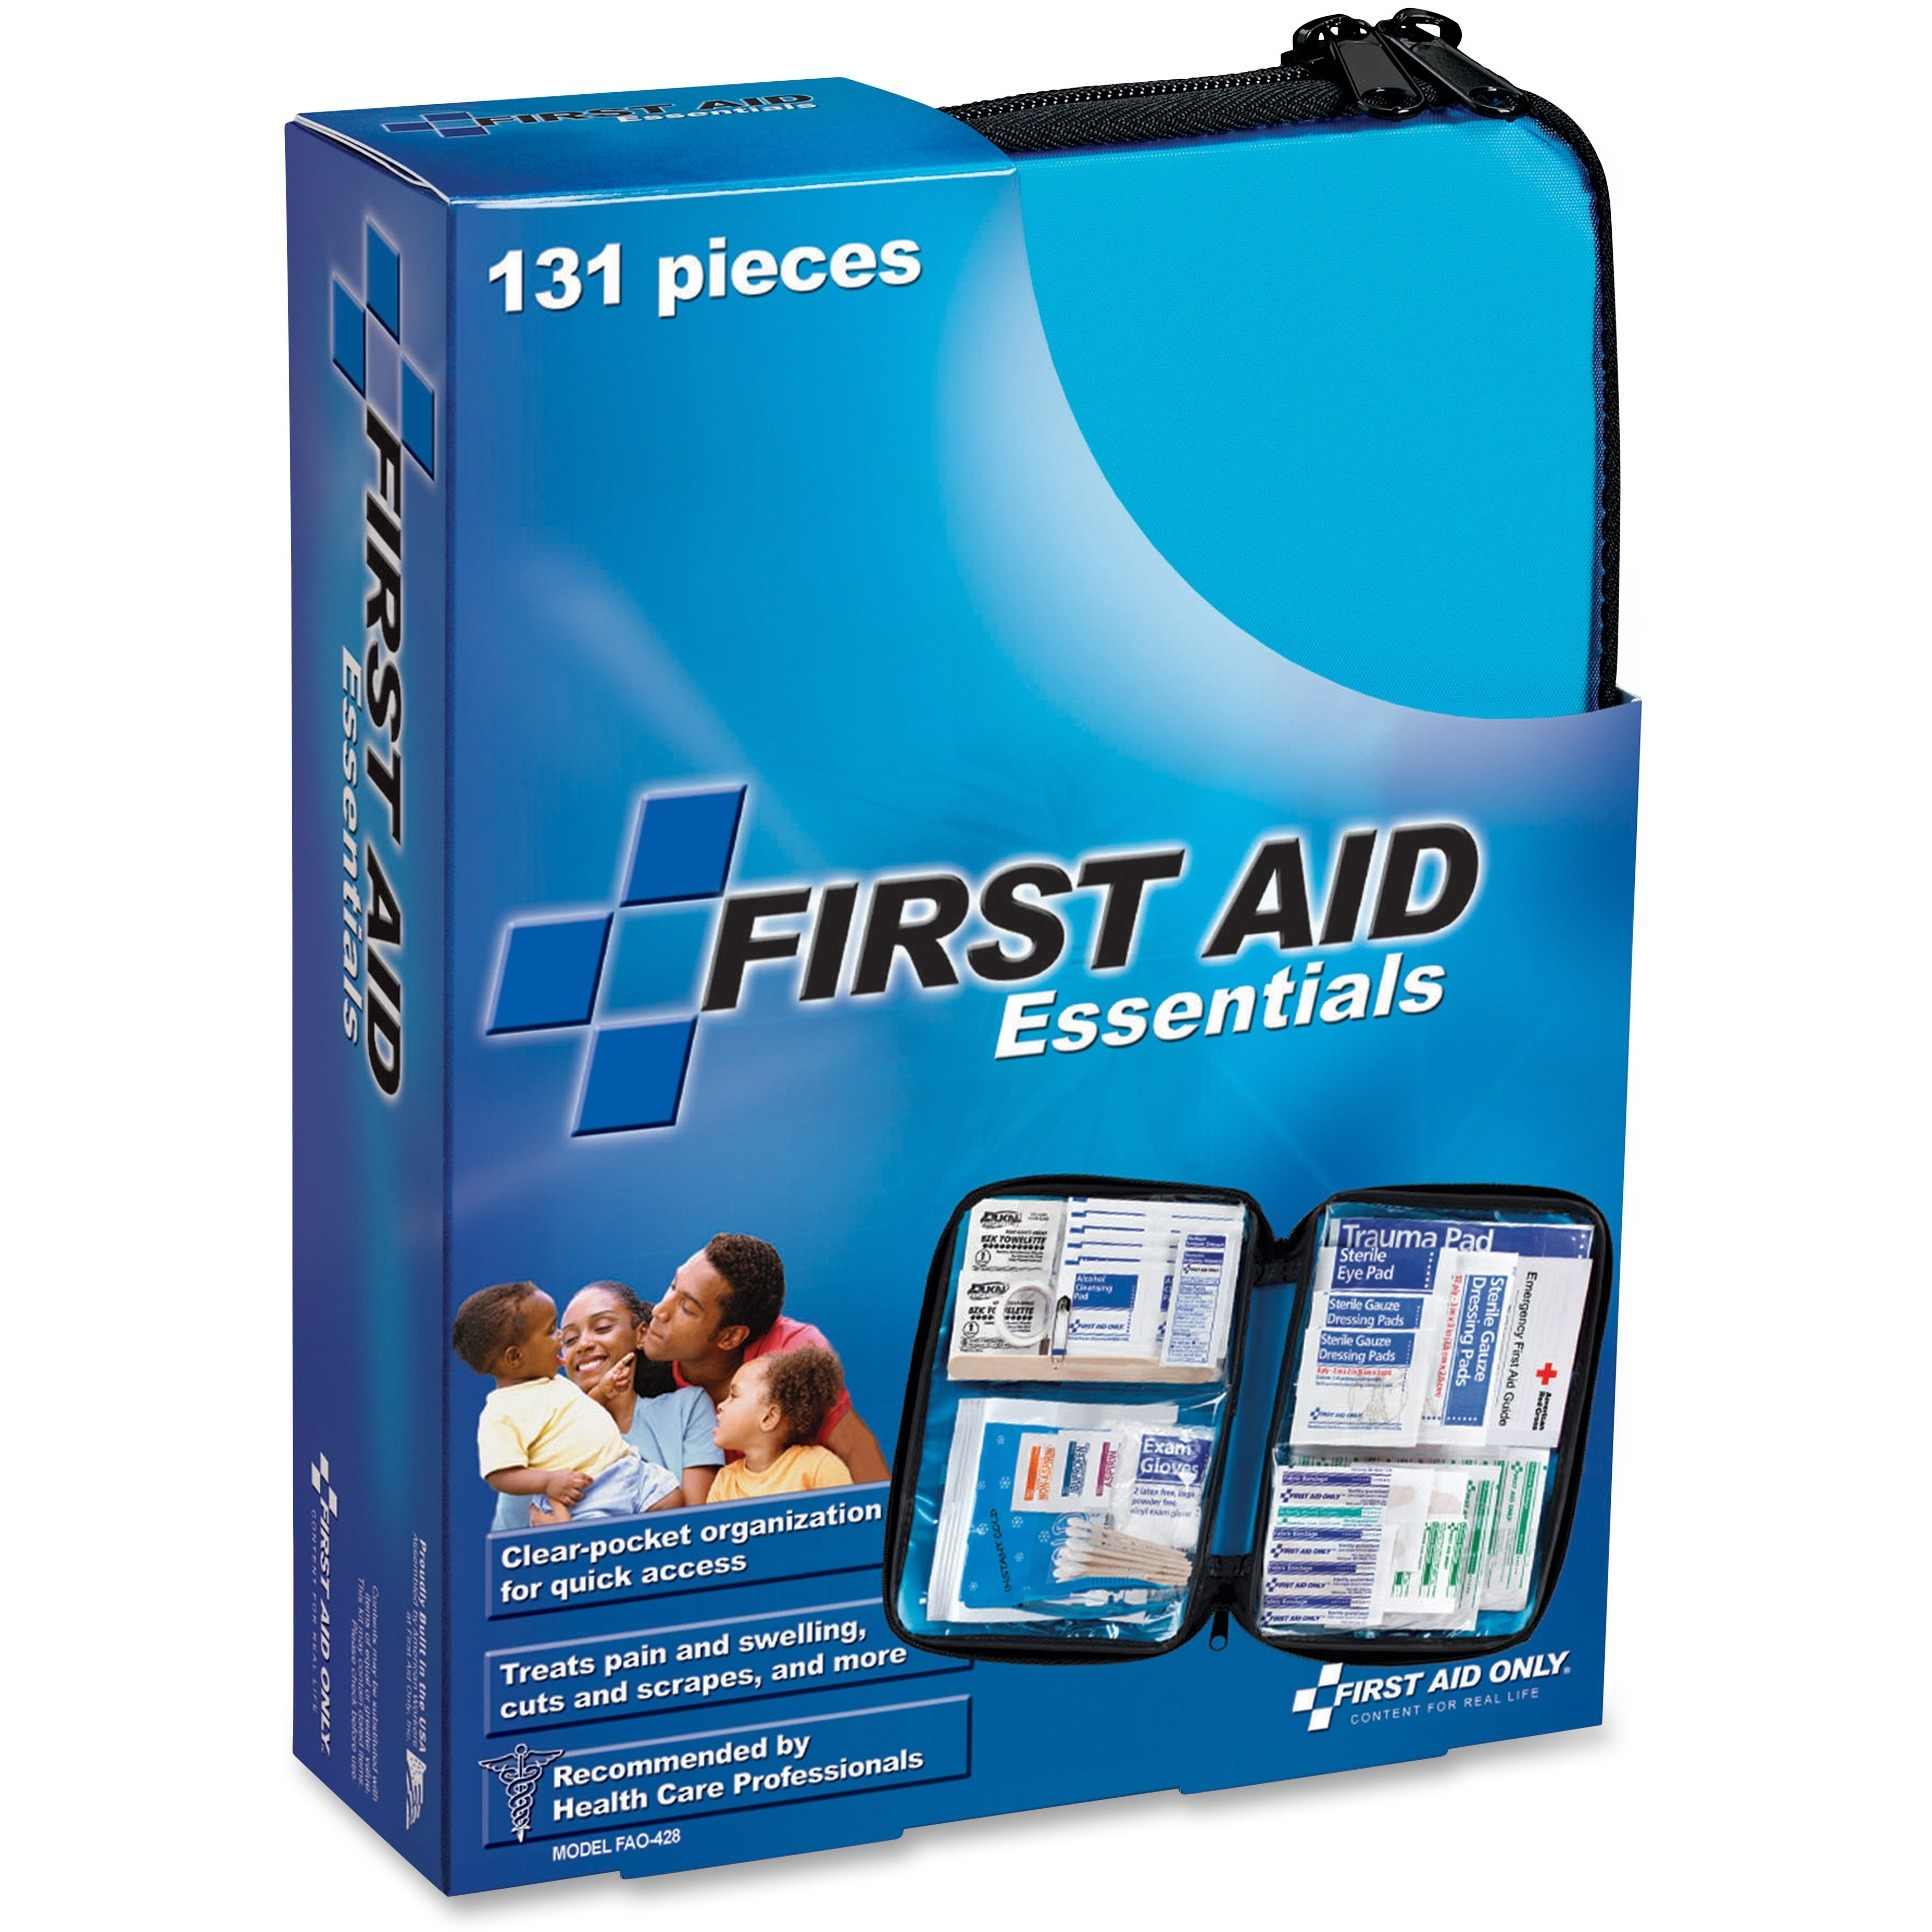 First Aid Only, FAO428, 131-piece Essentials First Aid Kit, 1 Each, Blue